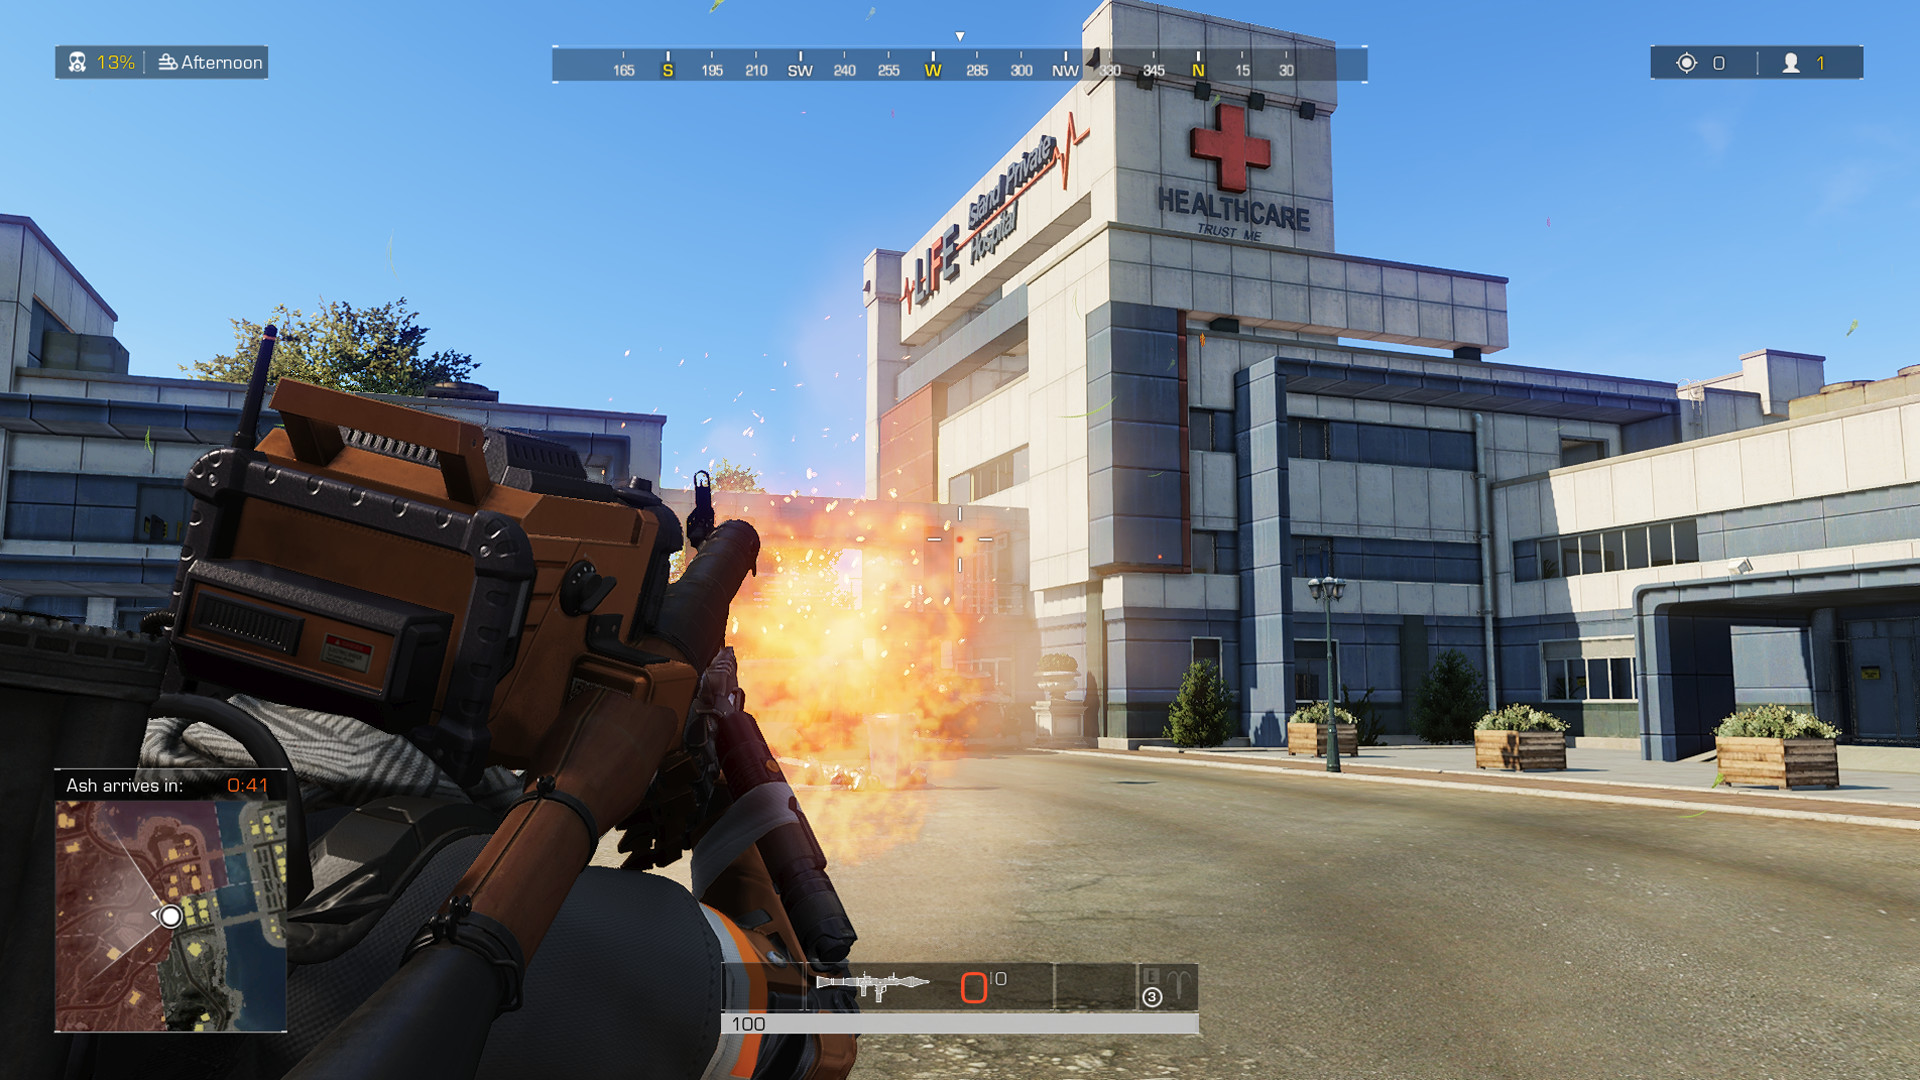 Cuisine Royale Malware Ring Of Elysium On Steam